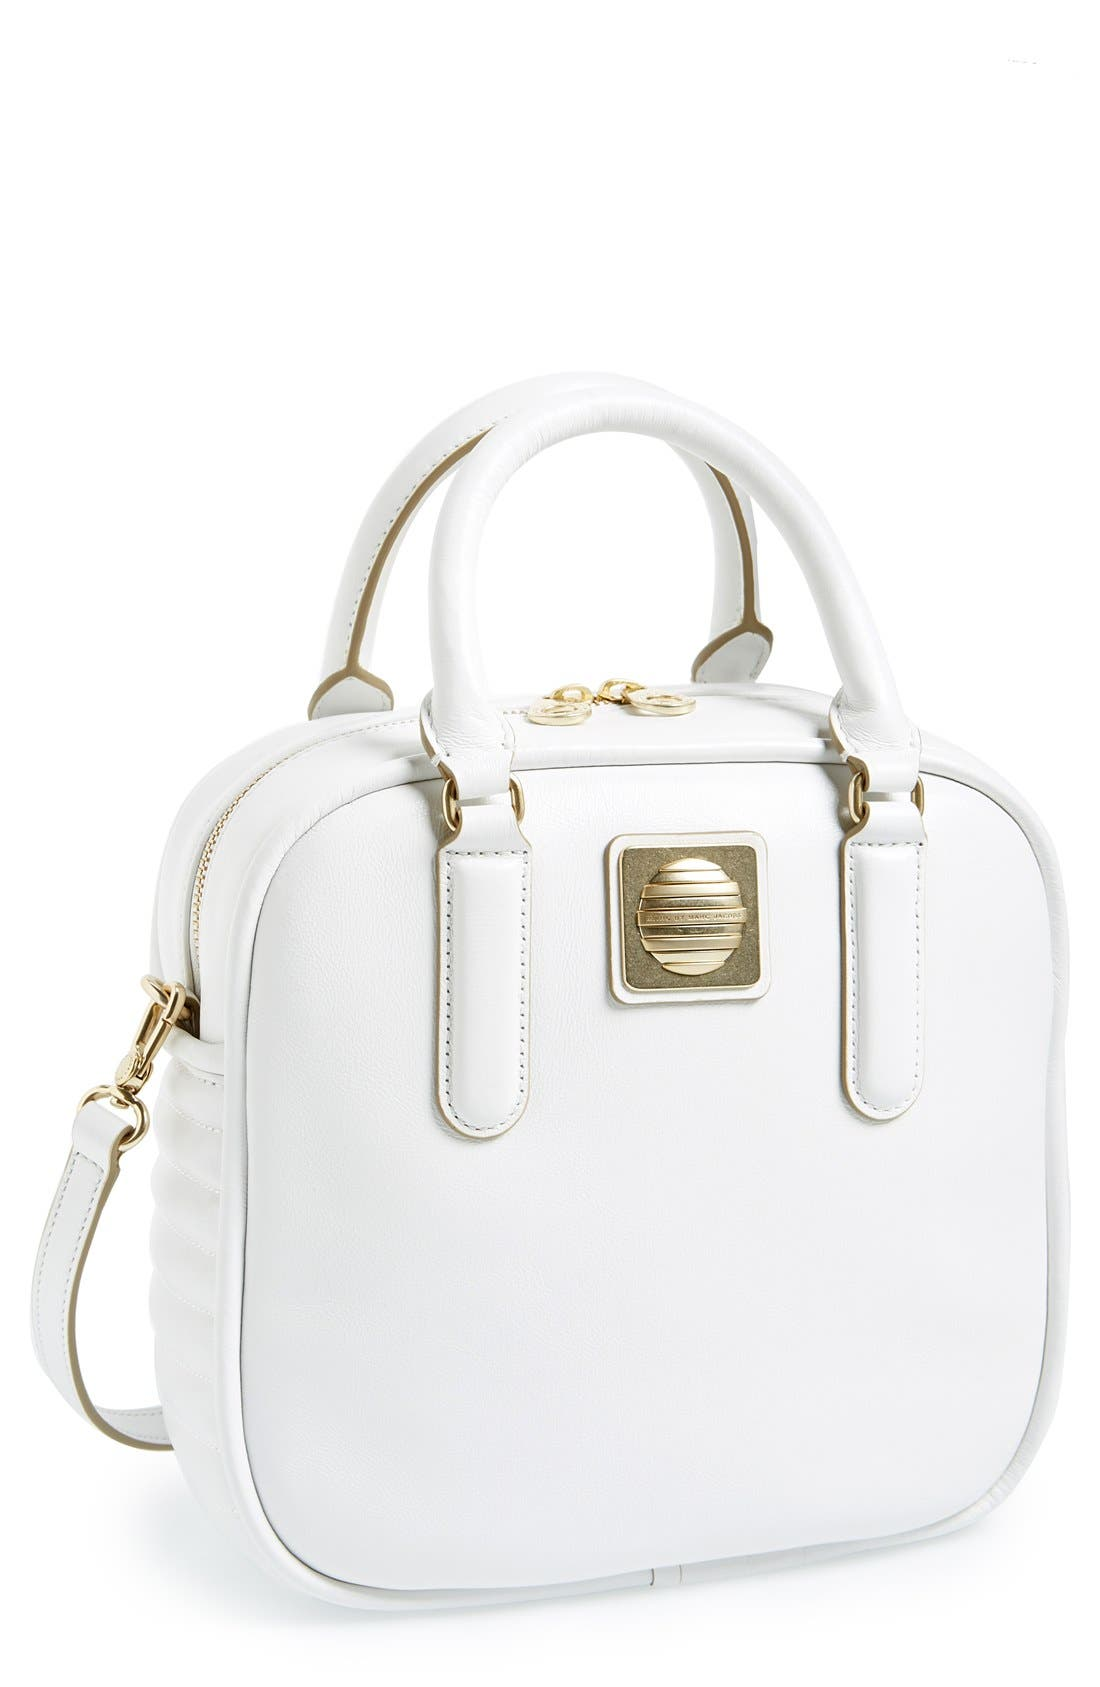 Main Image - MARC BY MARC JACOBS 'The Big Bind - Stevie' Leather Satchel